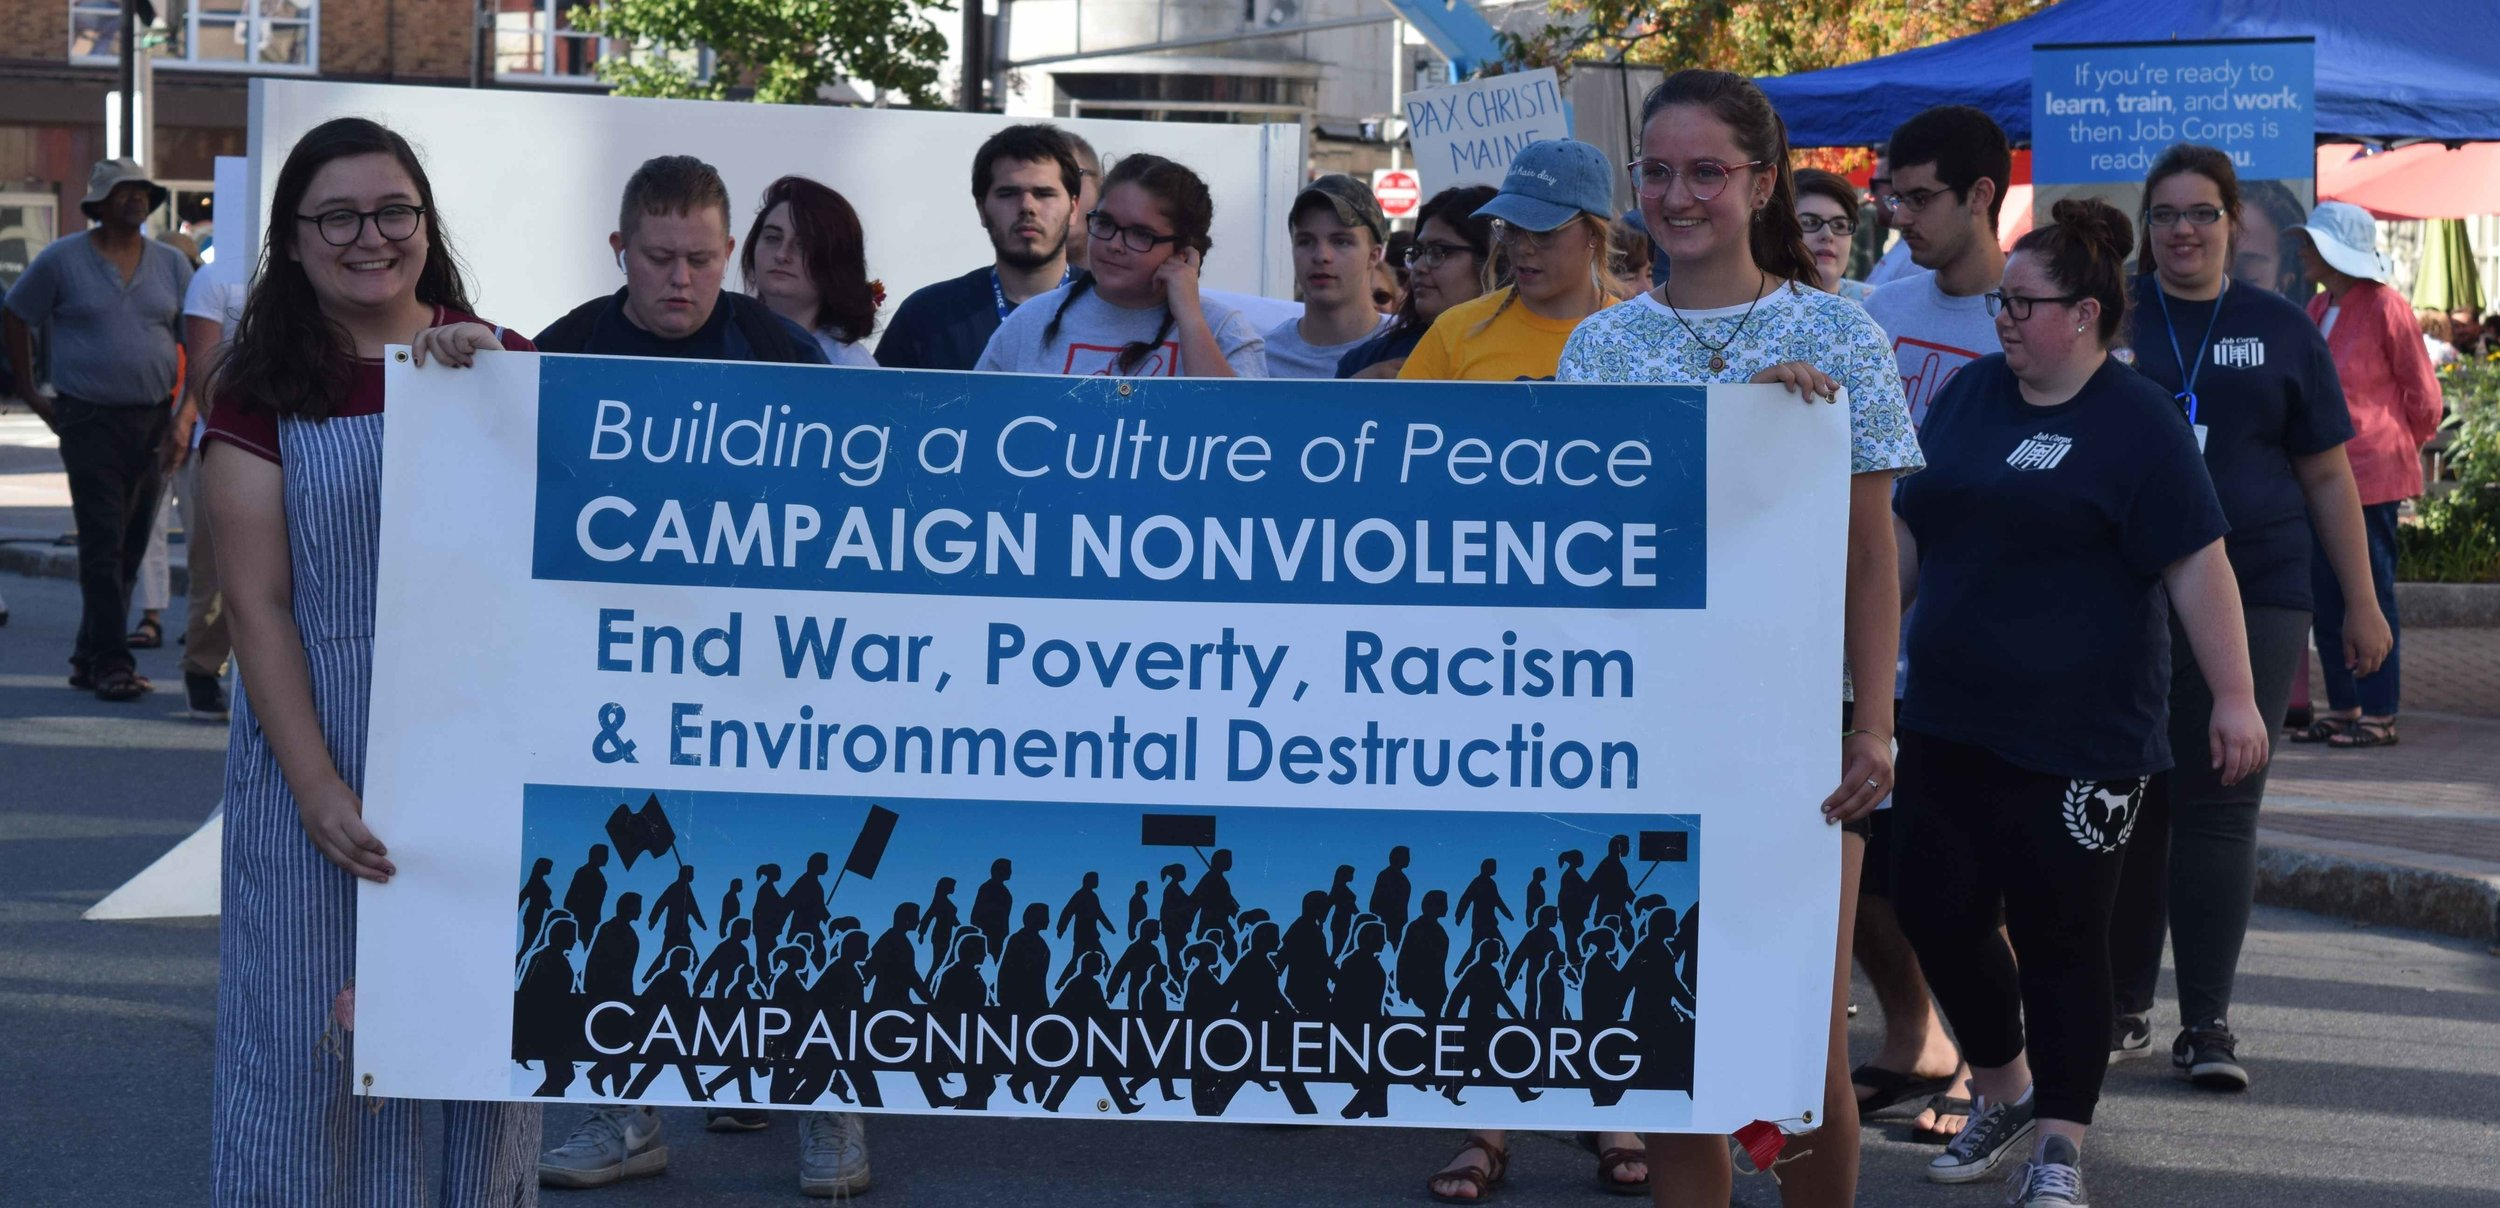 Campaign Nonviolence Action Week - Bangor, ME 2018